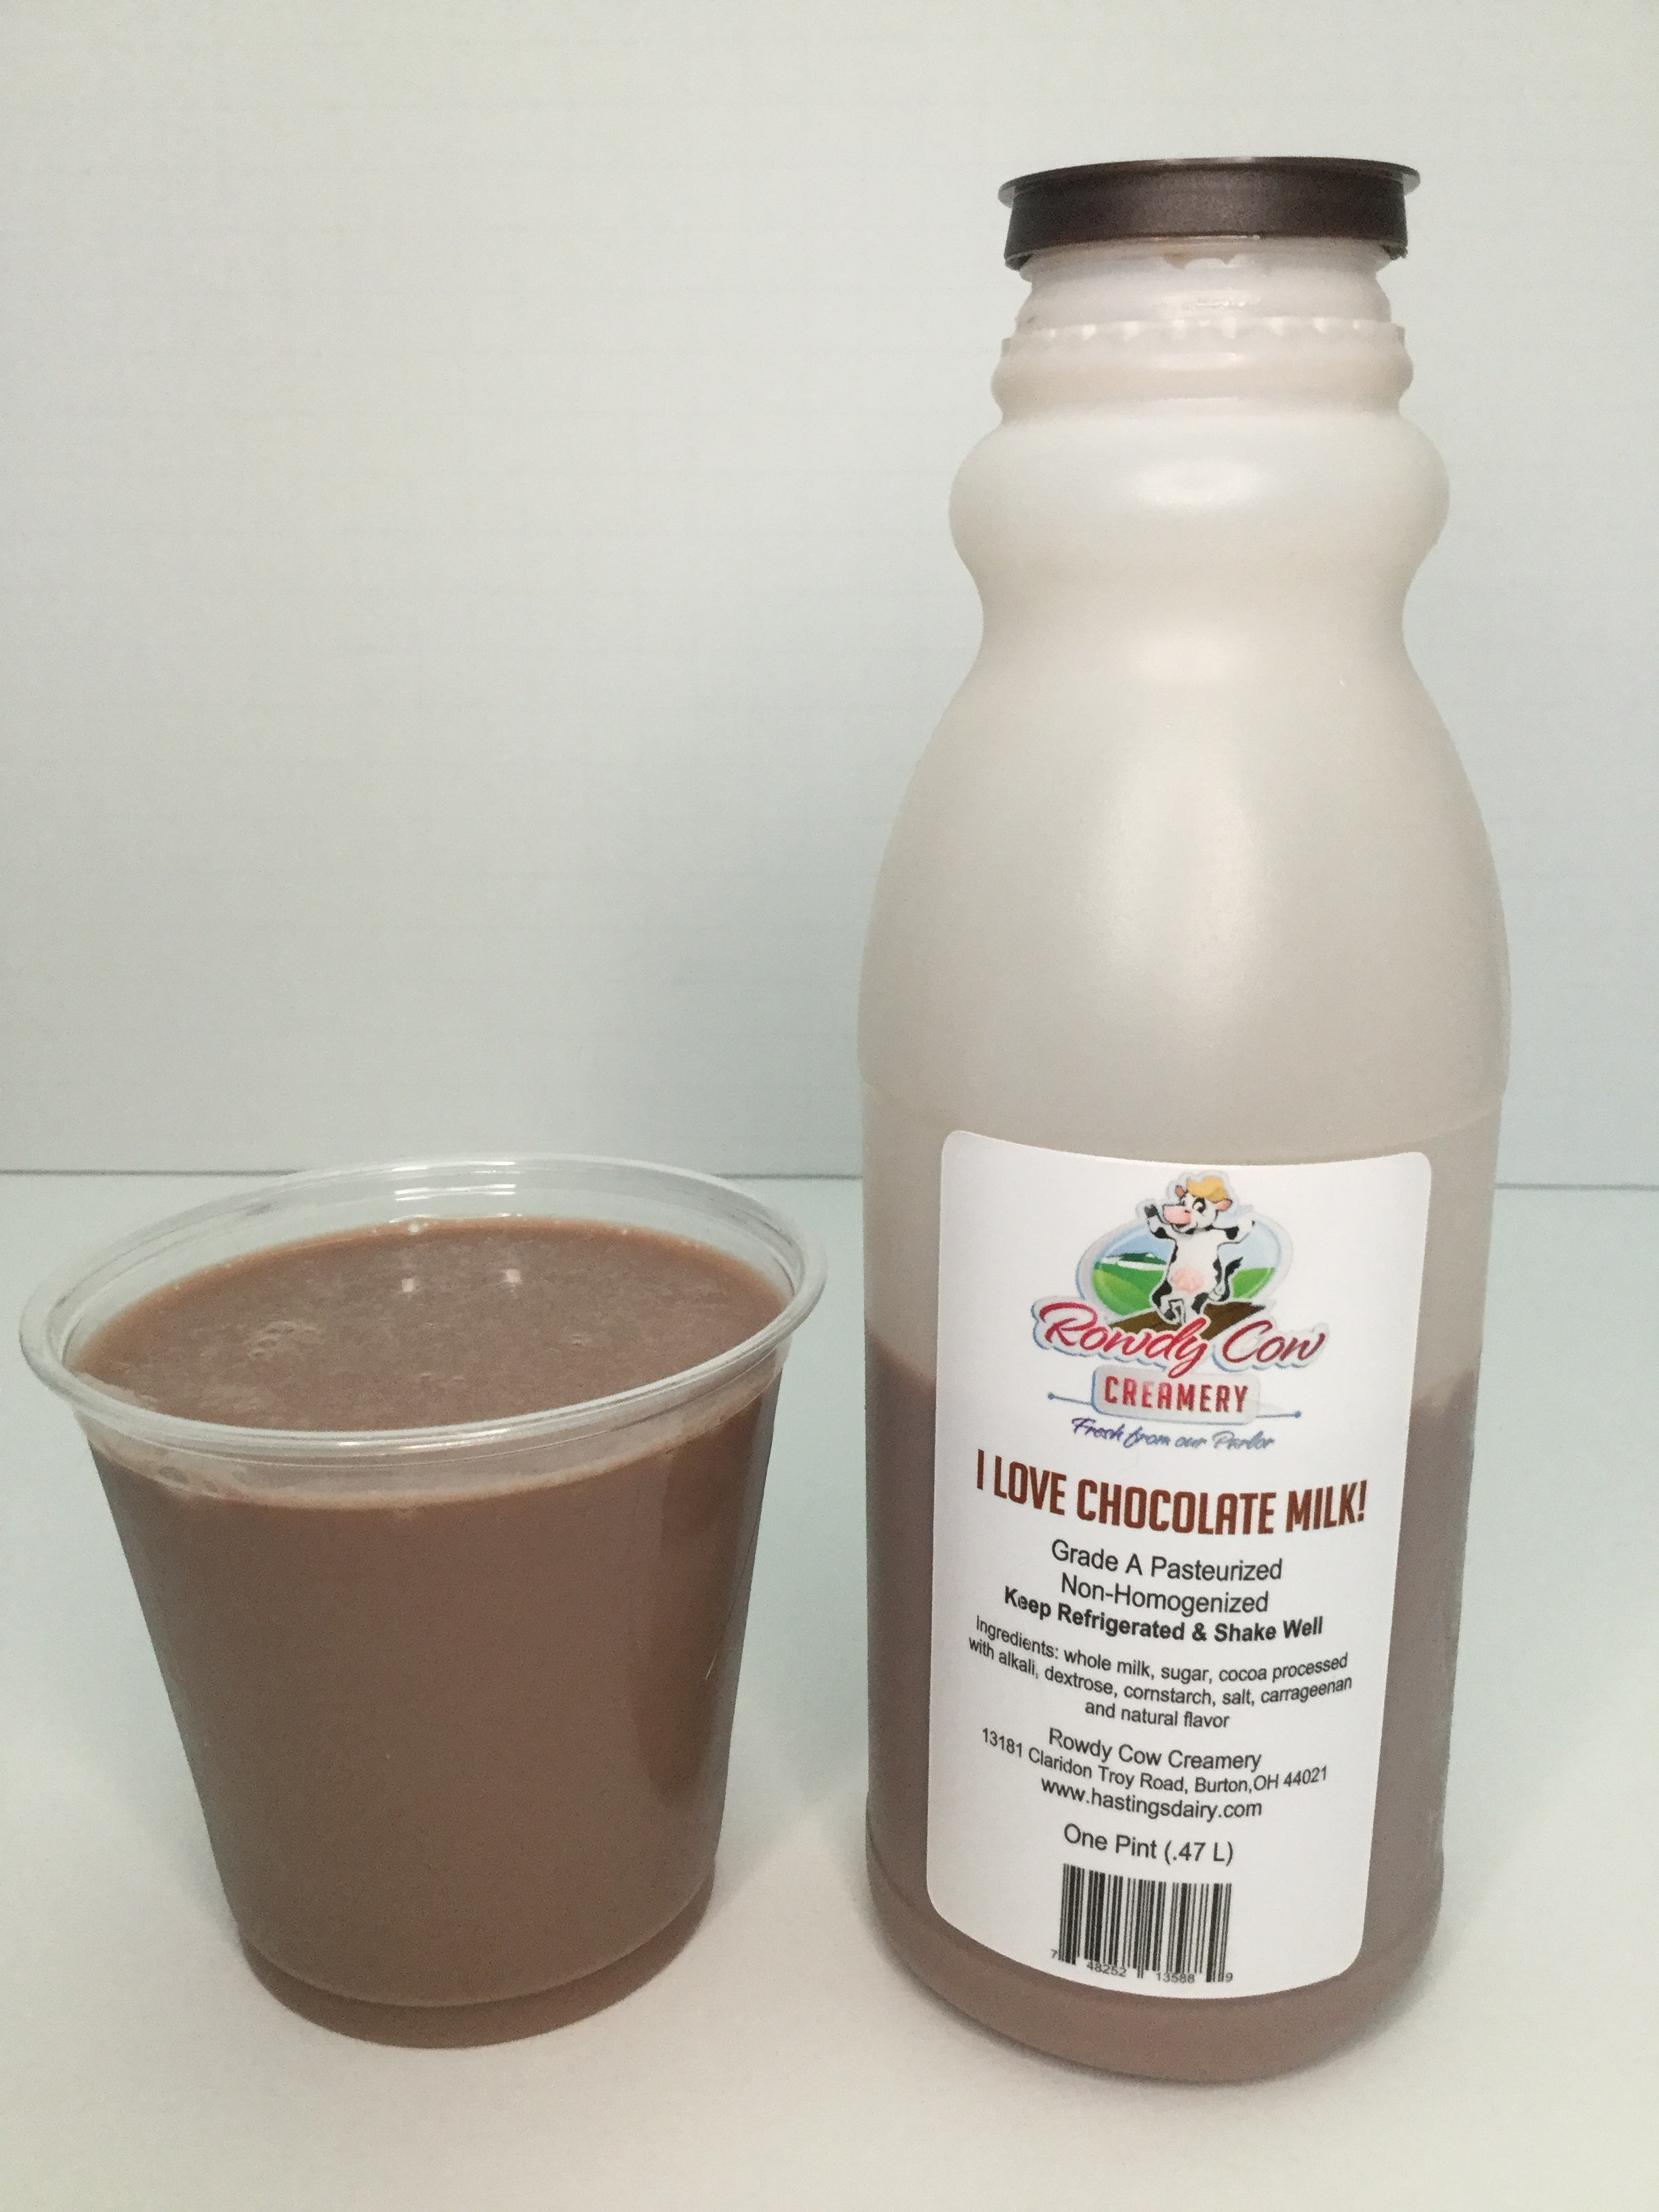 Rowdy Cow Creamery Chocolate Milk Cup